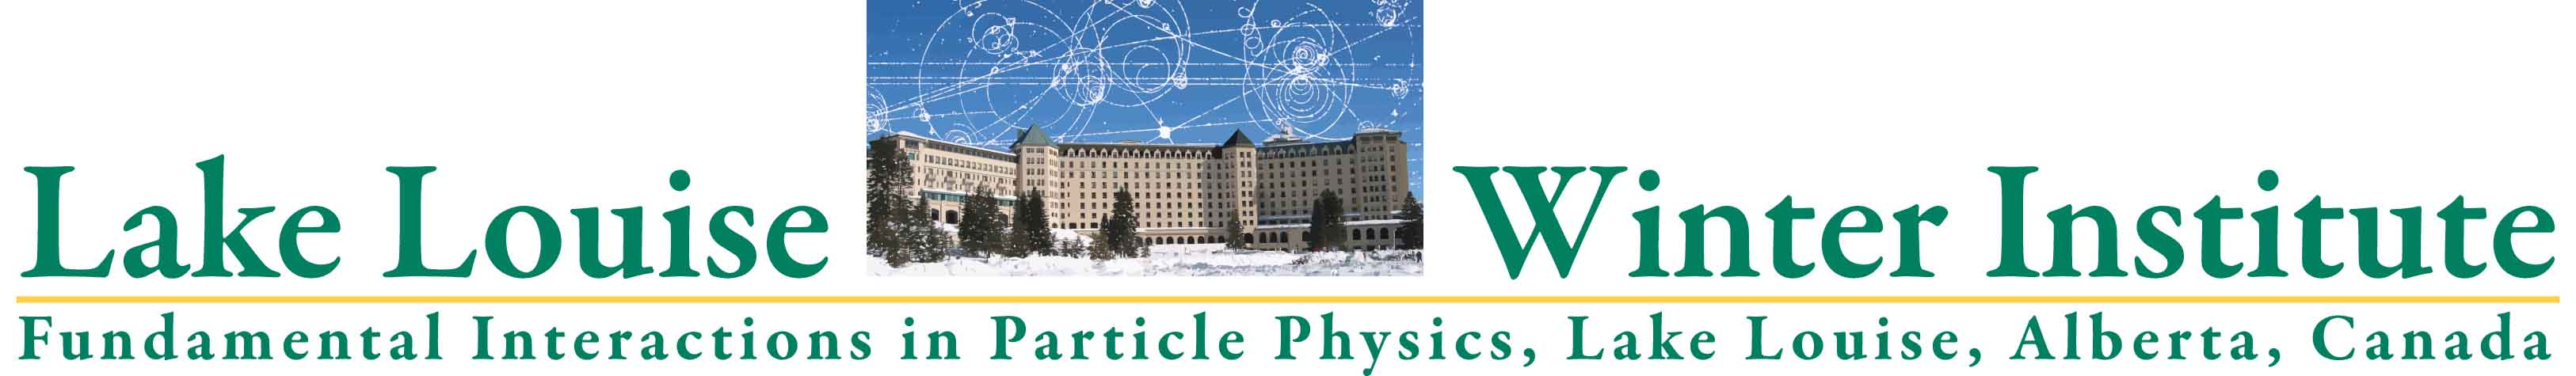 2018 Lake Louise Winter Institute